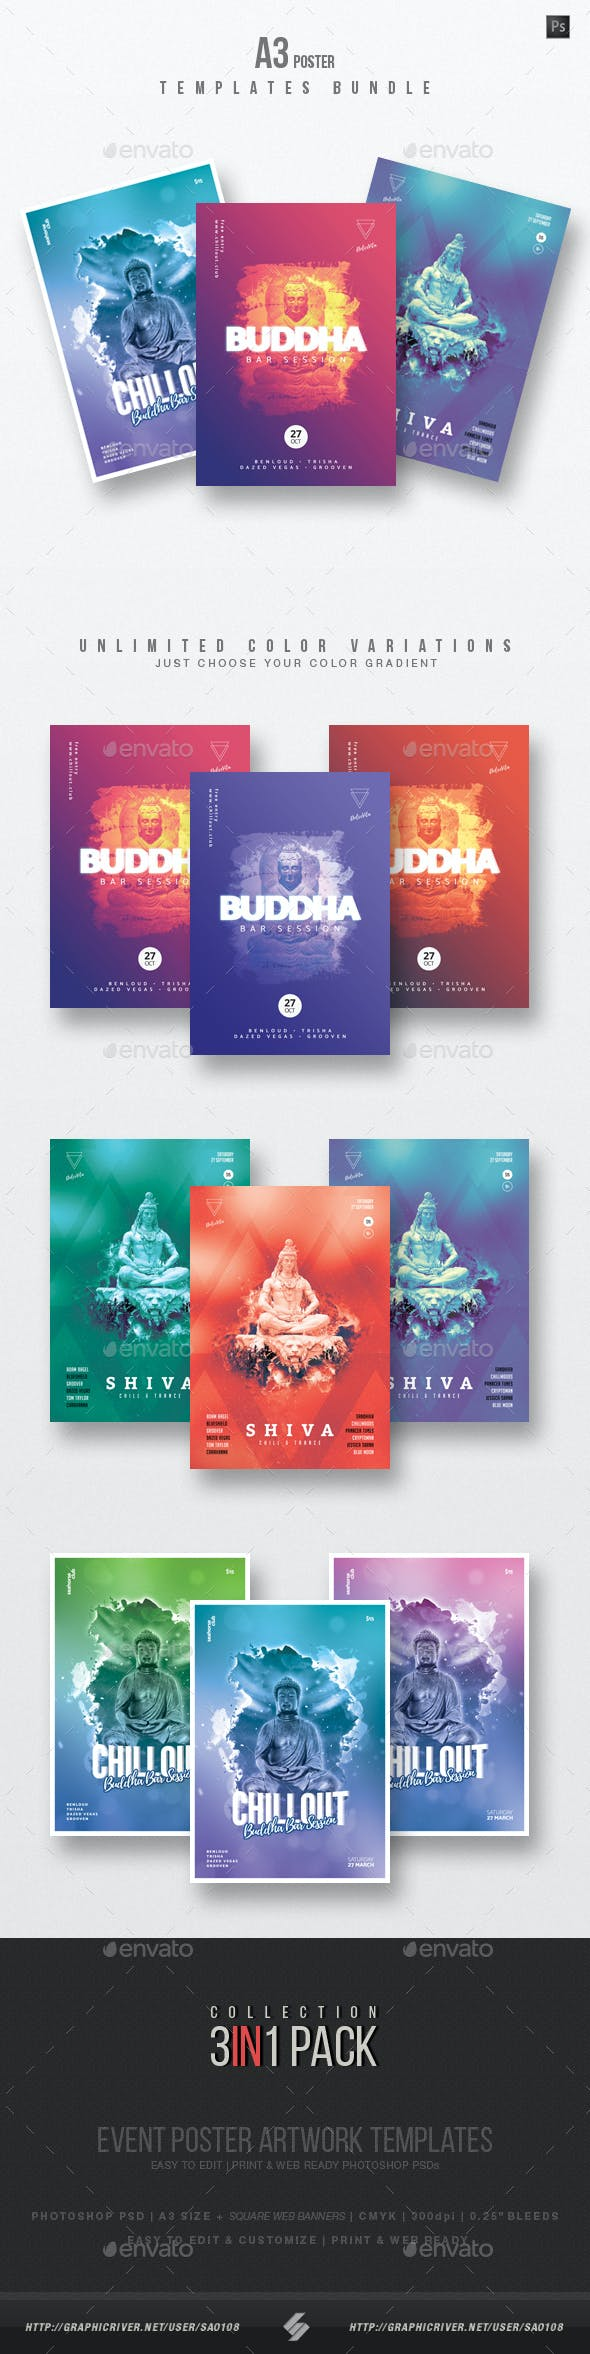 buddha bar chillout vol 2 event flyer templates bundle by sao108